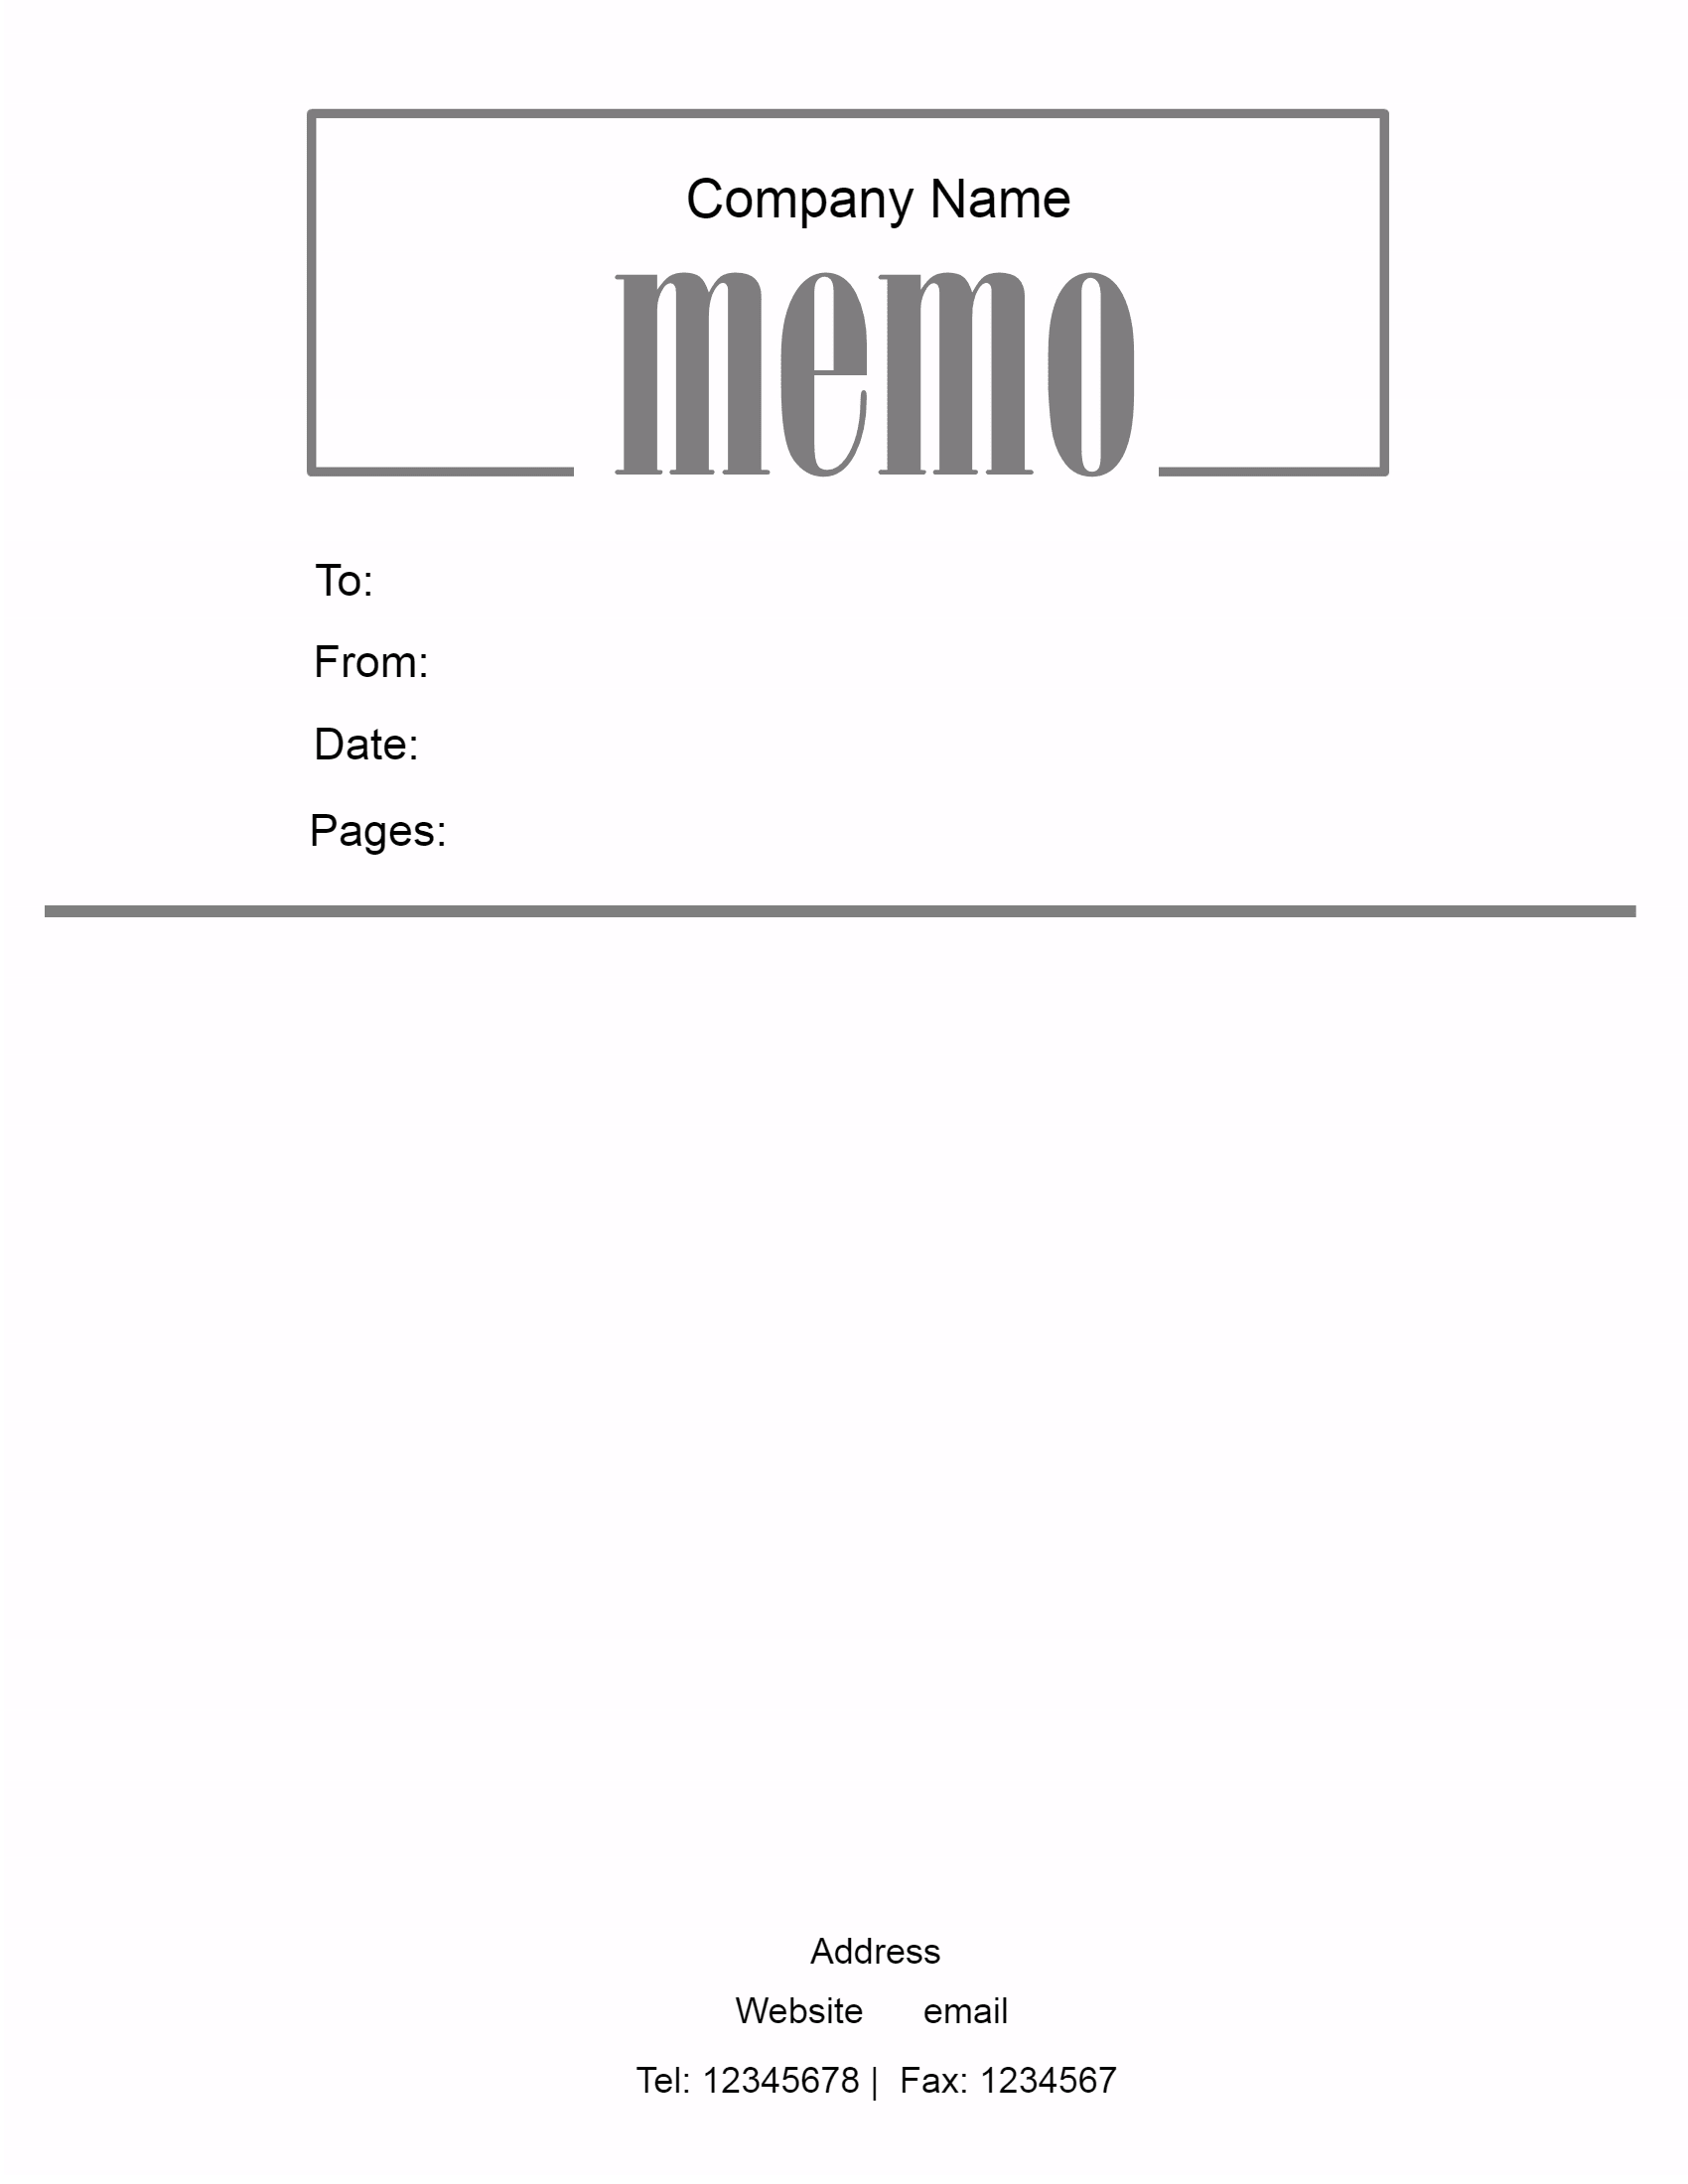 microsoft word memo template paralegal resume objective examples memo template word 2007 sample resume memo template 5 memo template word 2007html microsoft word memo template microsoft word memo template